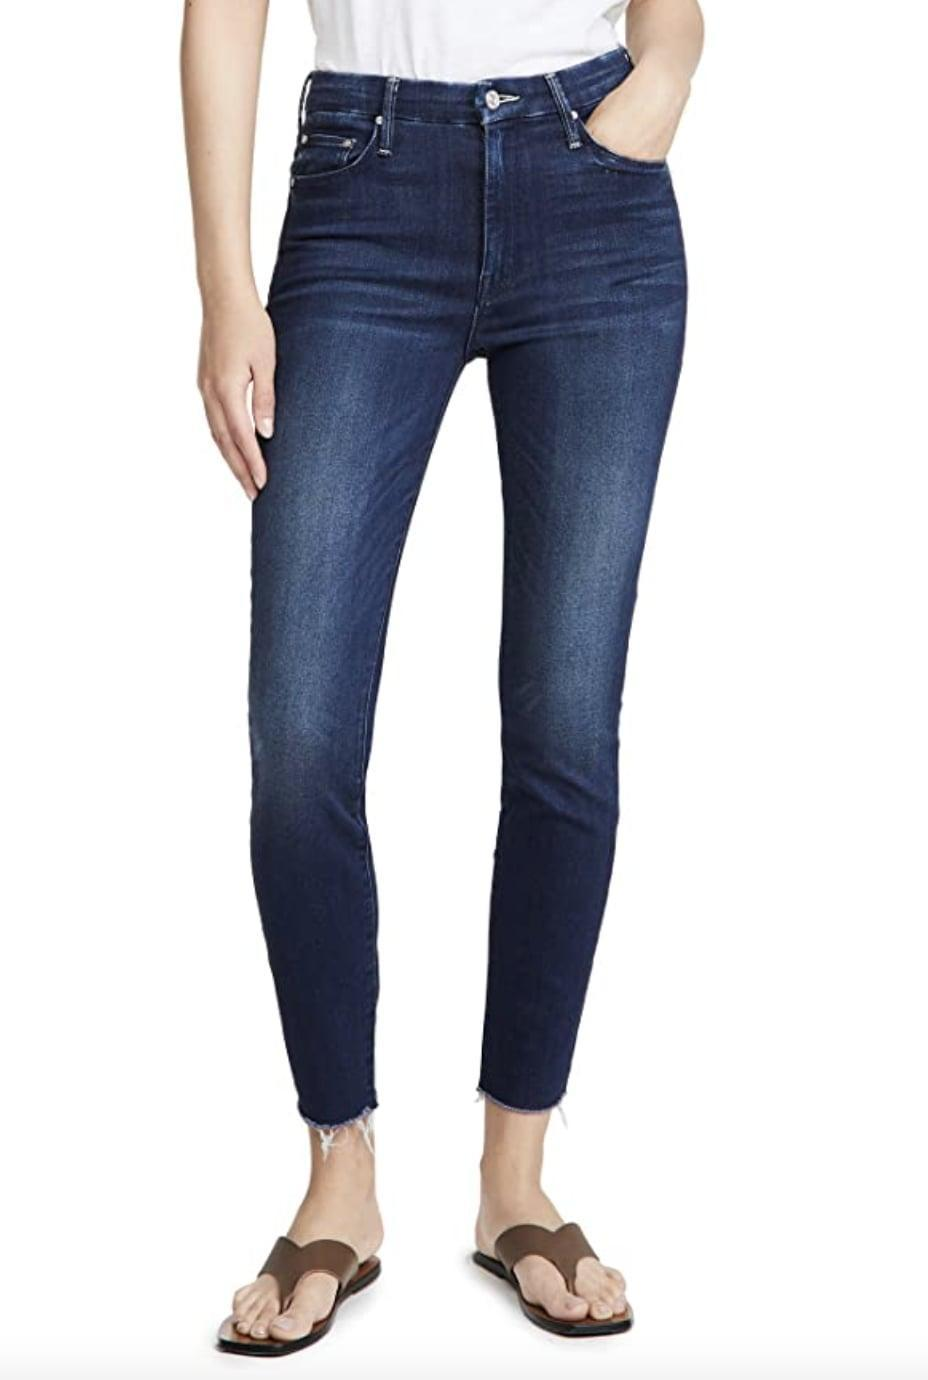 <p>Wear these dark <span>Mother High Waisted Looker Ankle Fray Jeans</span> ($198 - $228) with white sneakers for a fresh contrast.</p>